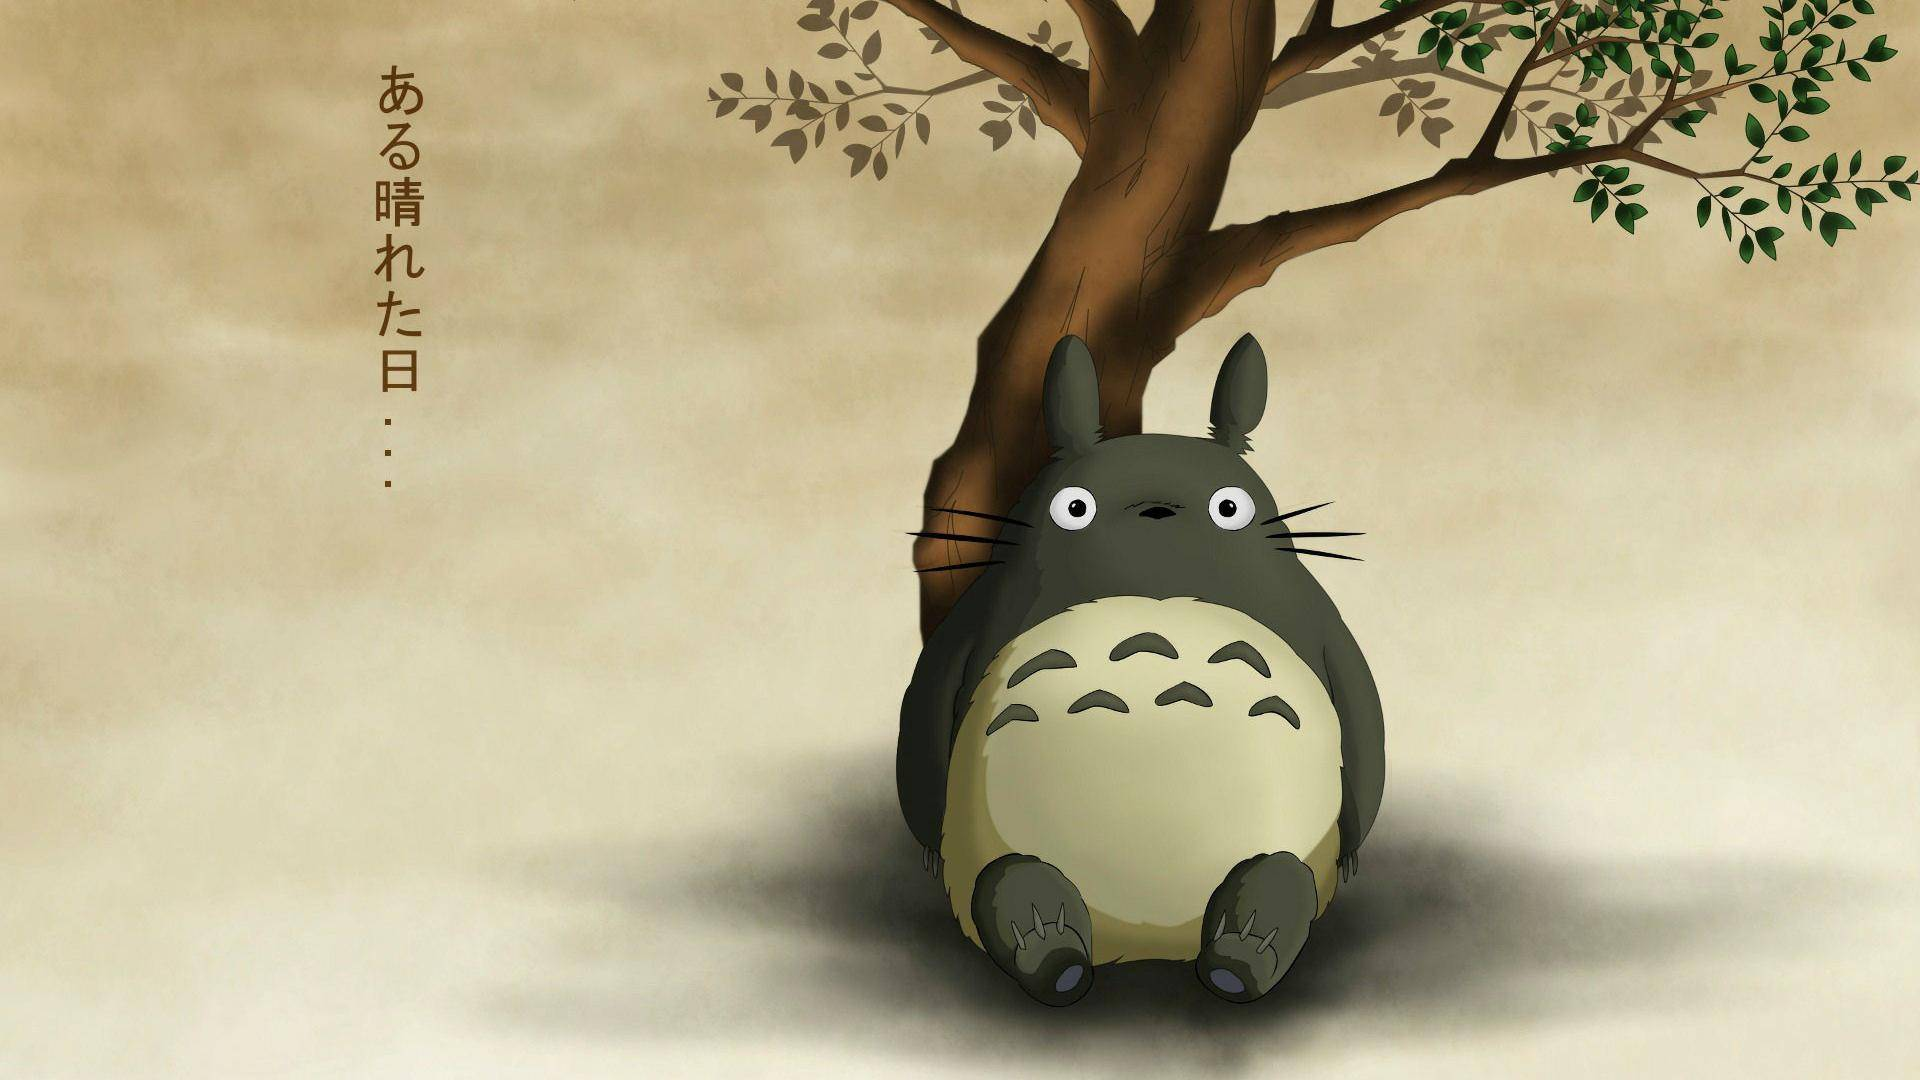 Studio Ghibli Wallpapers - Wallpaper Cave